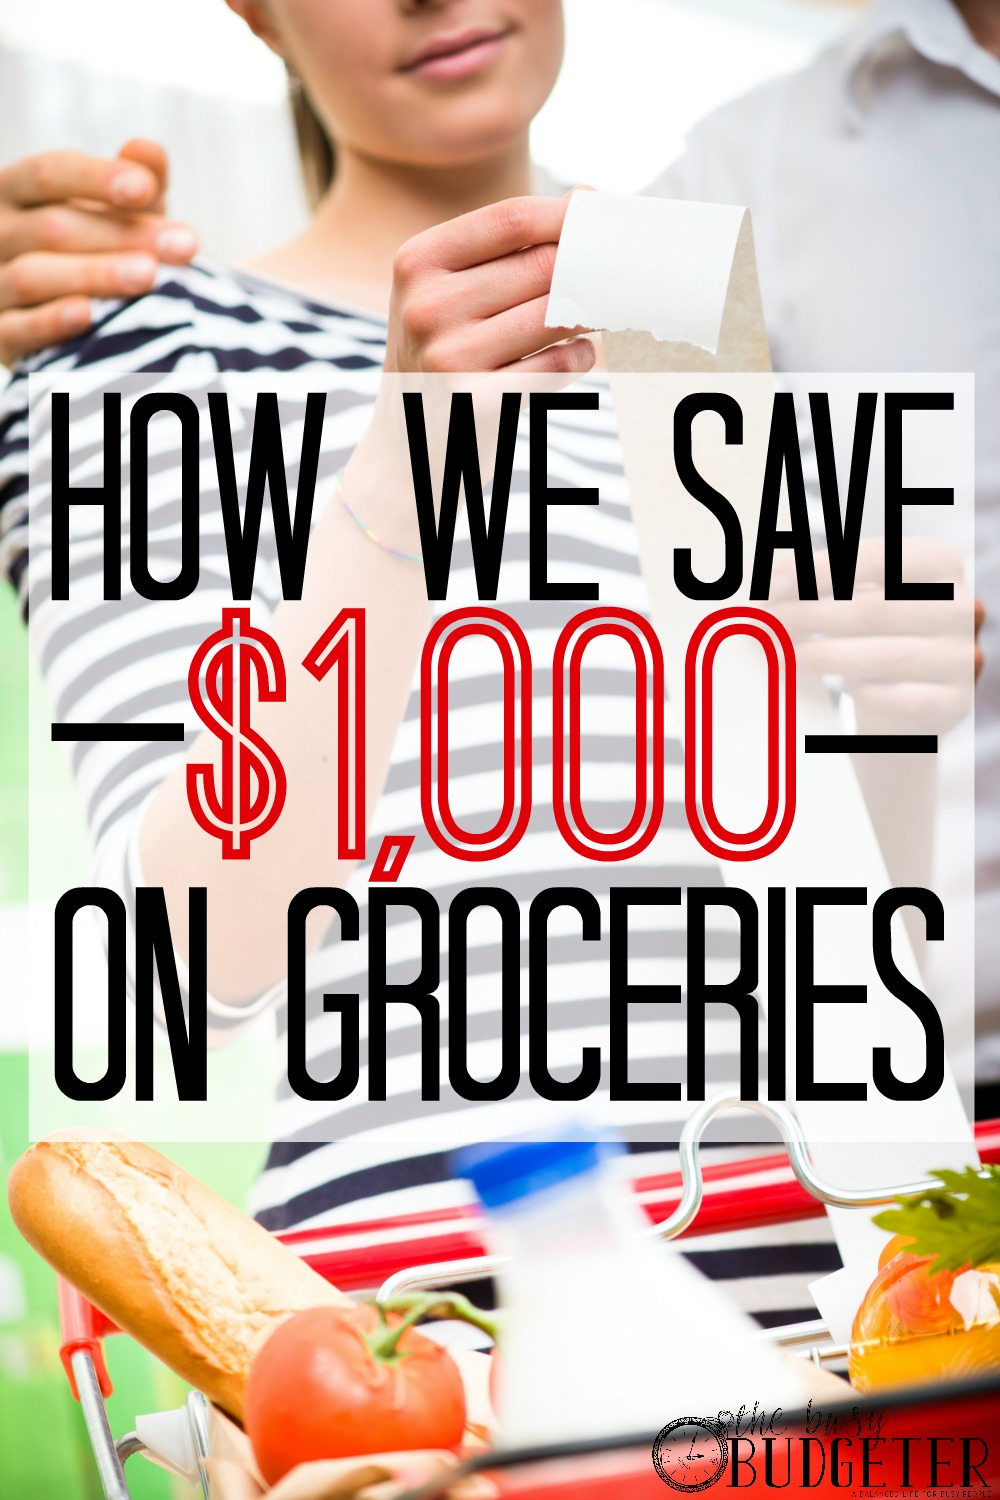 The Simplest Way to Save Money on Groceries. This is exactly what we needed! I waste so much money on food but everything else I've read makes it sound so simple without explainign exactly what I need to do. This did exactly what I wanted.... told me EXACTLY what to do, step by step to spend less on groceries. It's already working! Hubby is impressed!